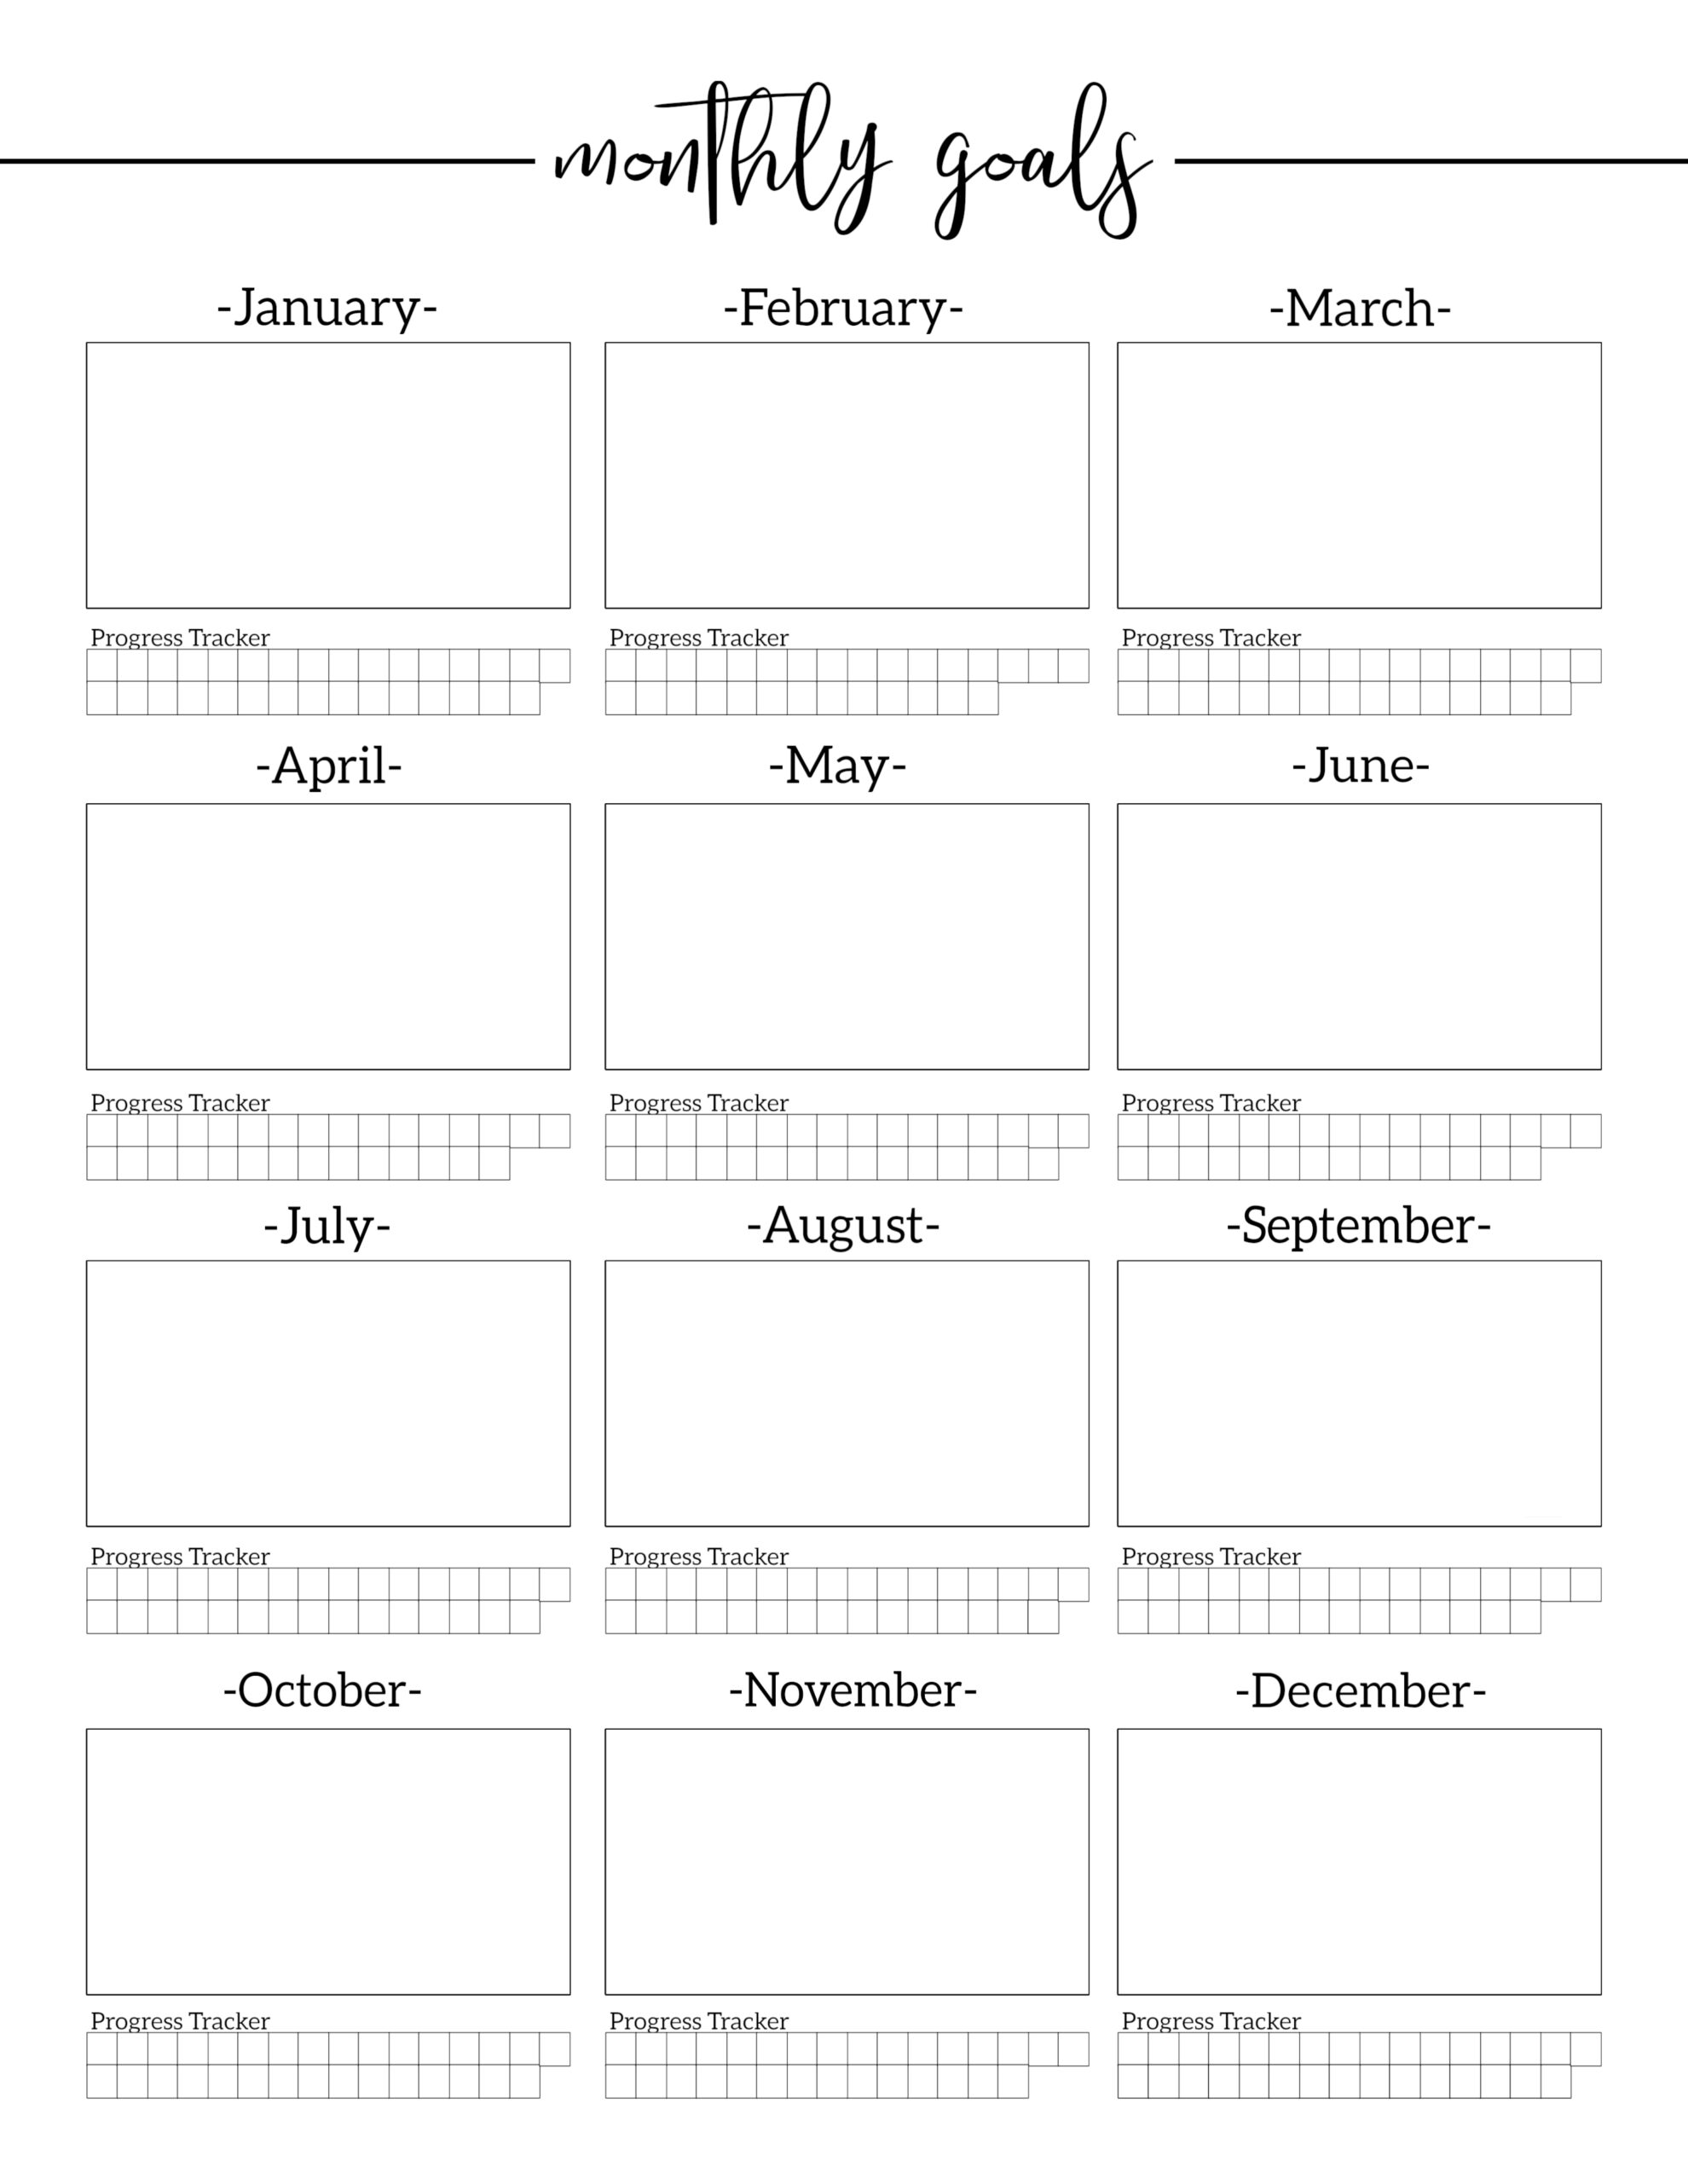 Monthly Goal Setting Worksheet With Progress Tracker